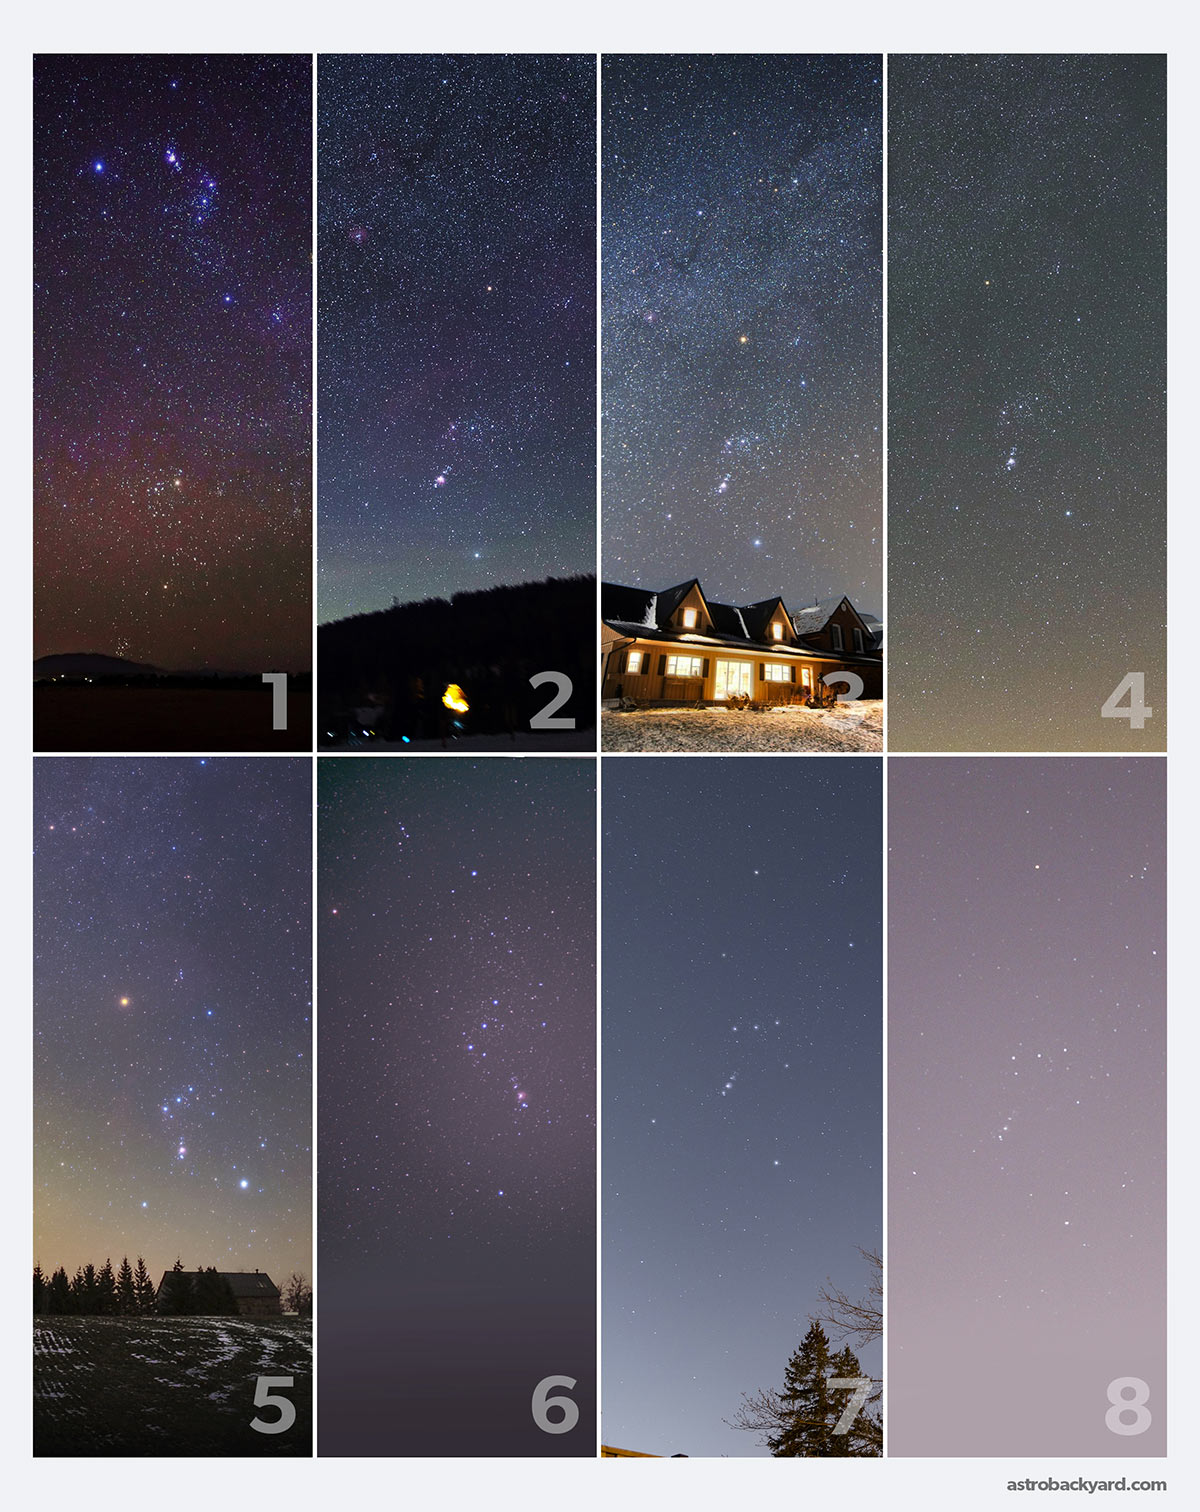 Light Pollution and the Bortle Scale